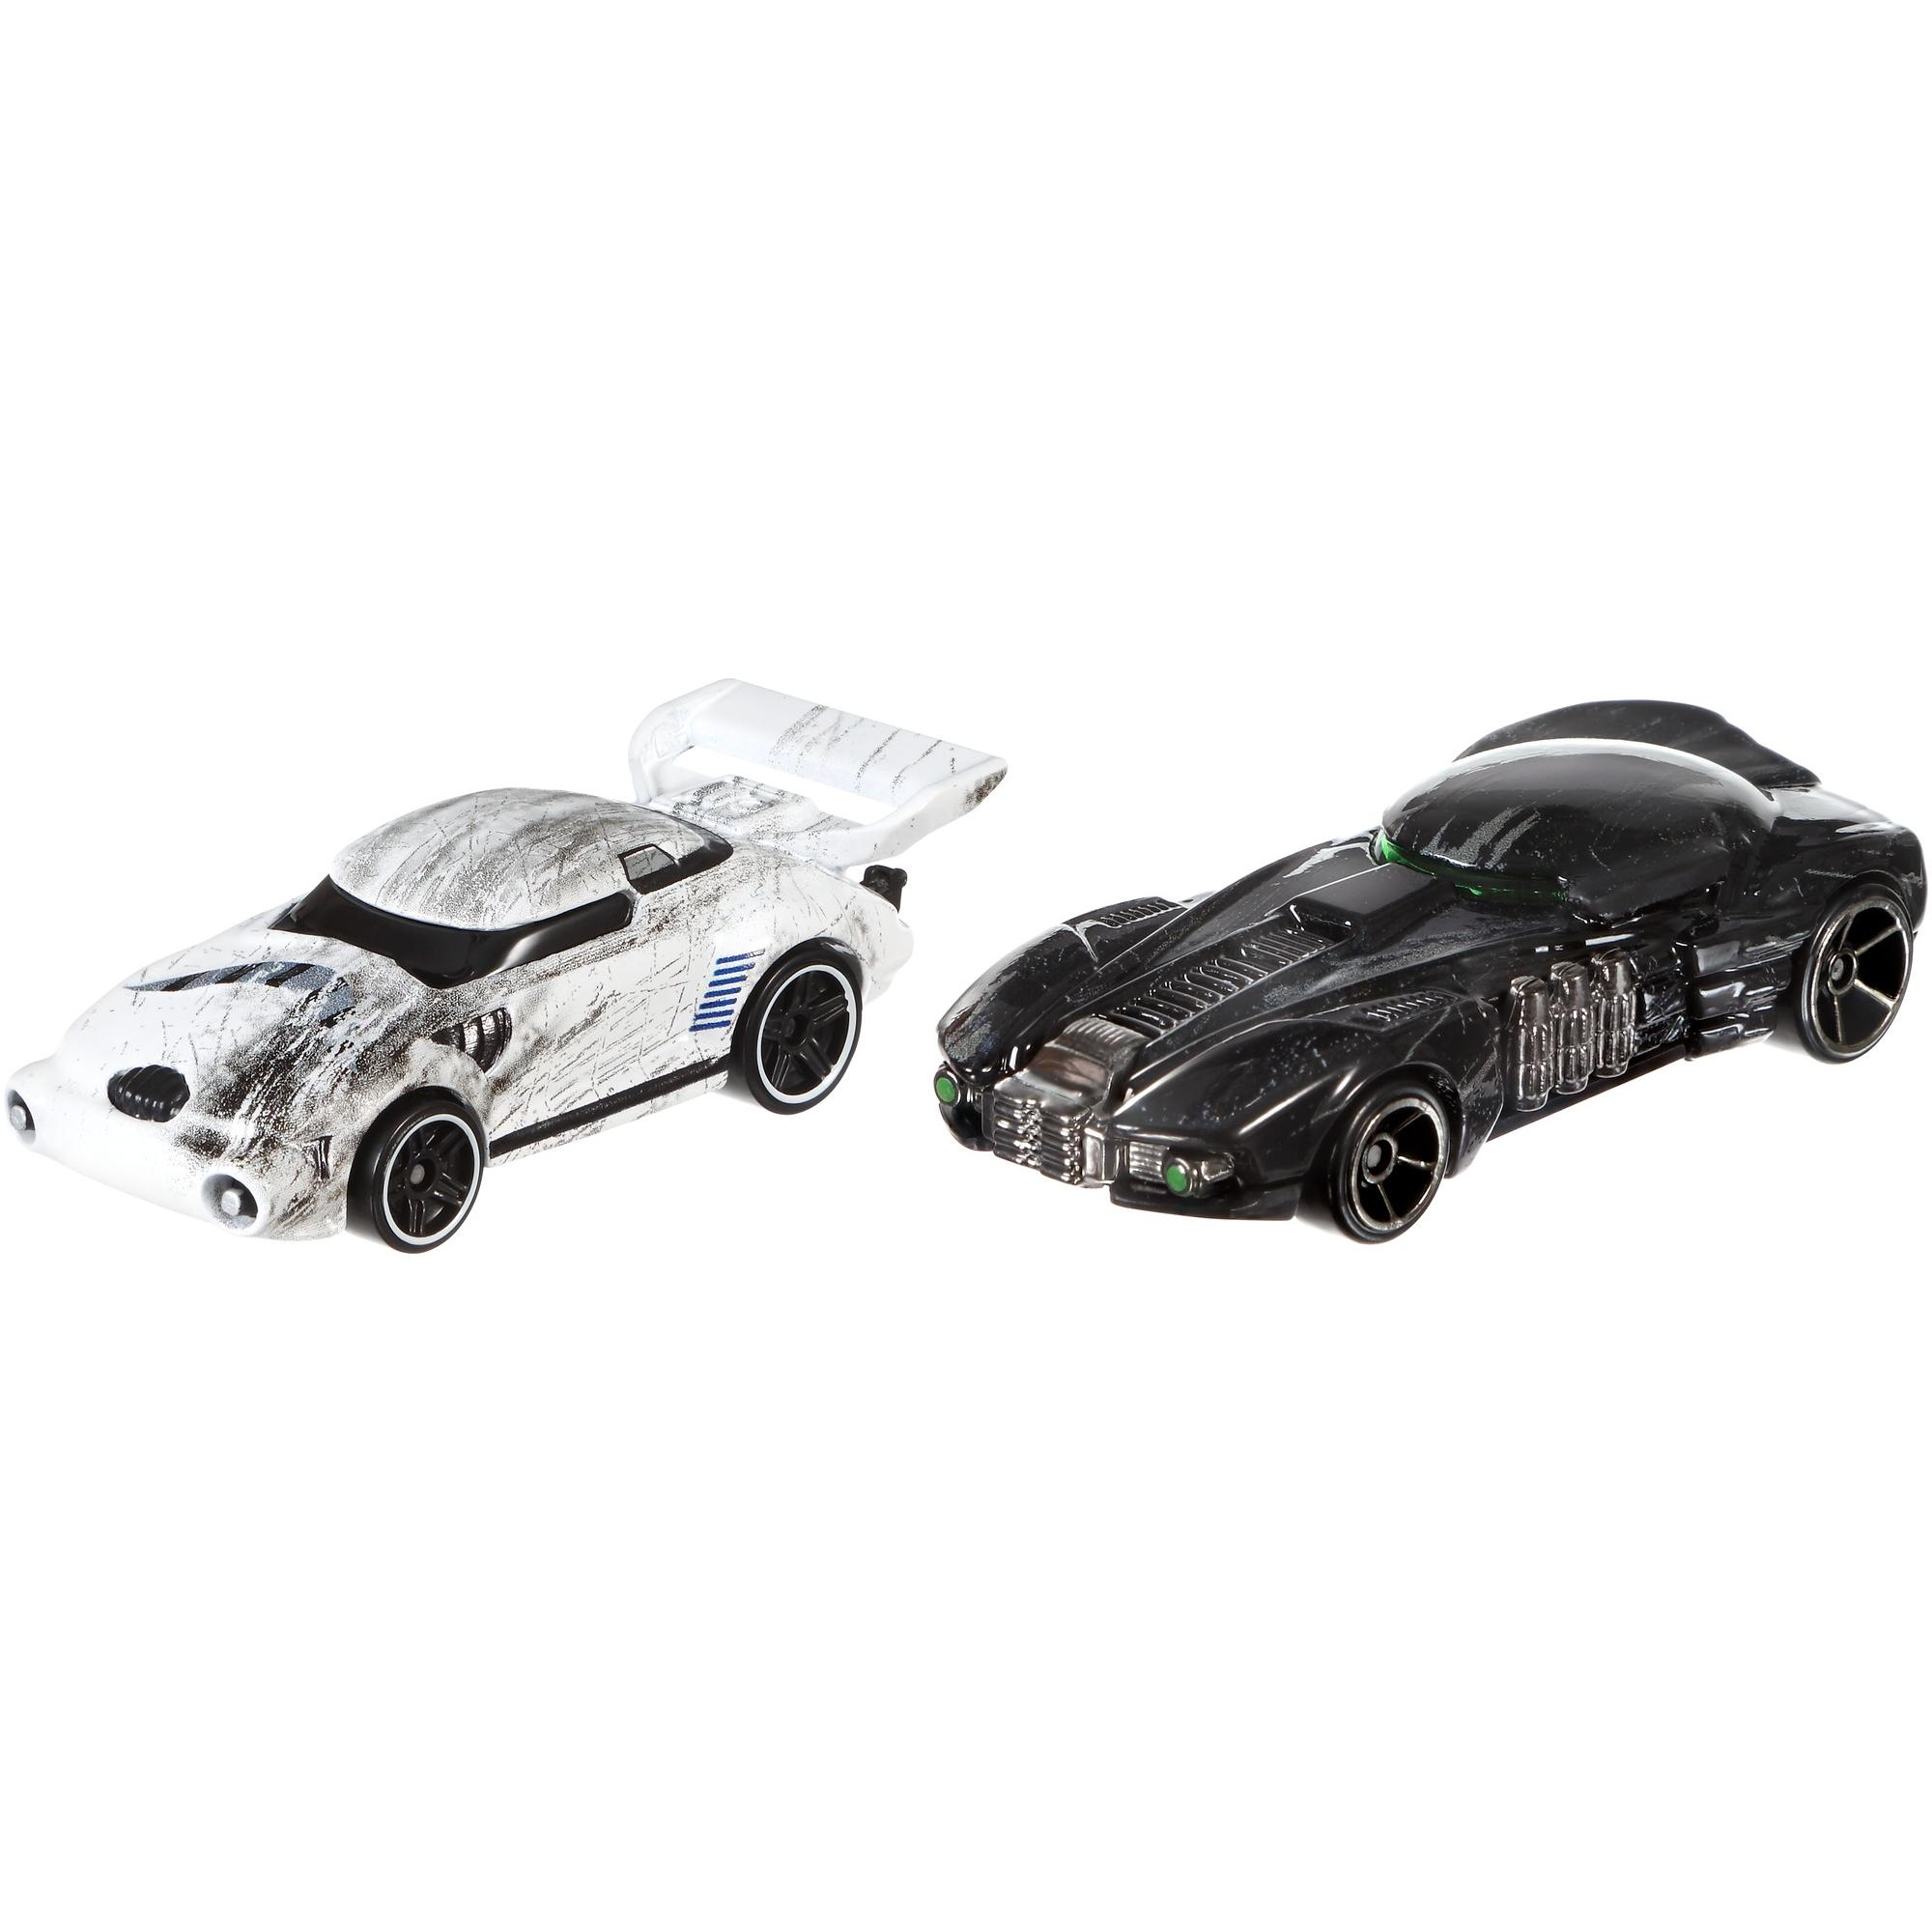 Hot Wheels Star Wars Rogue One Character Car Stormtrooper and Death Trooper 2-Pack by Mattel